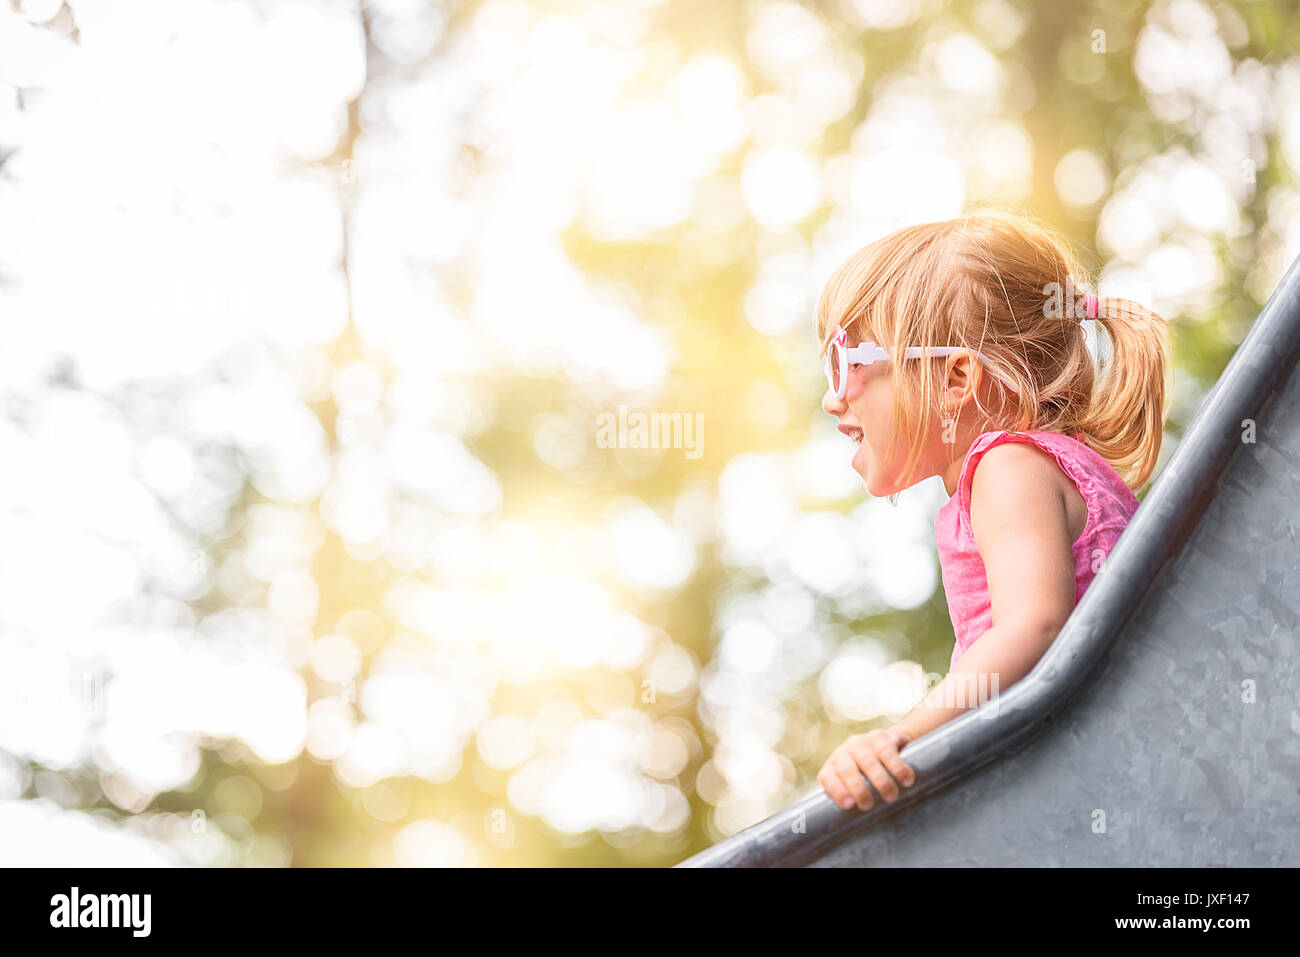 Close-up image with a  little girl having fun on a slide from a playground, on a sunny day. - Stock Image